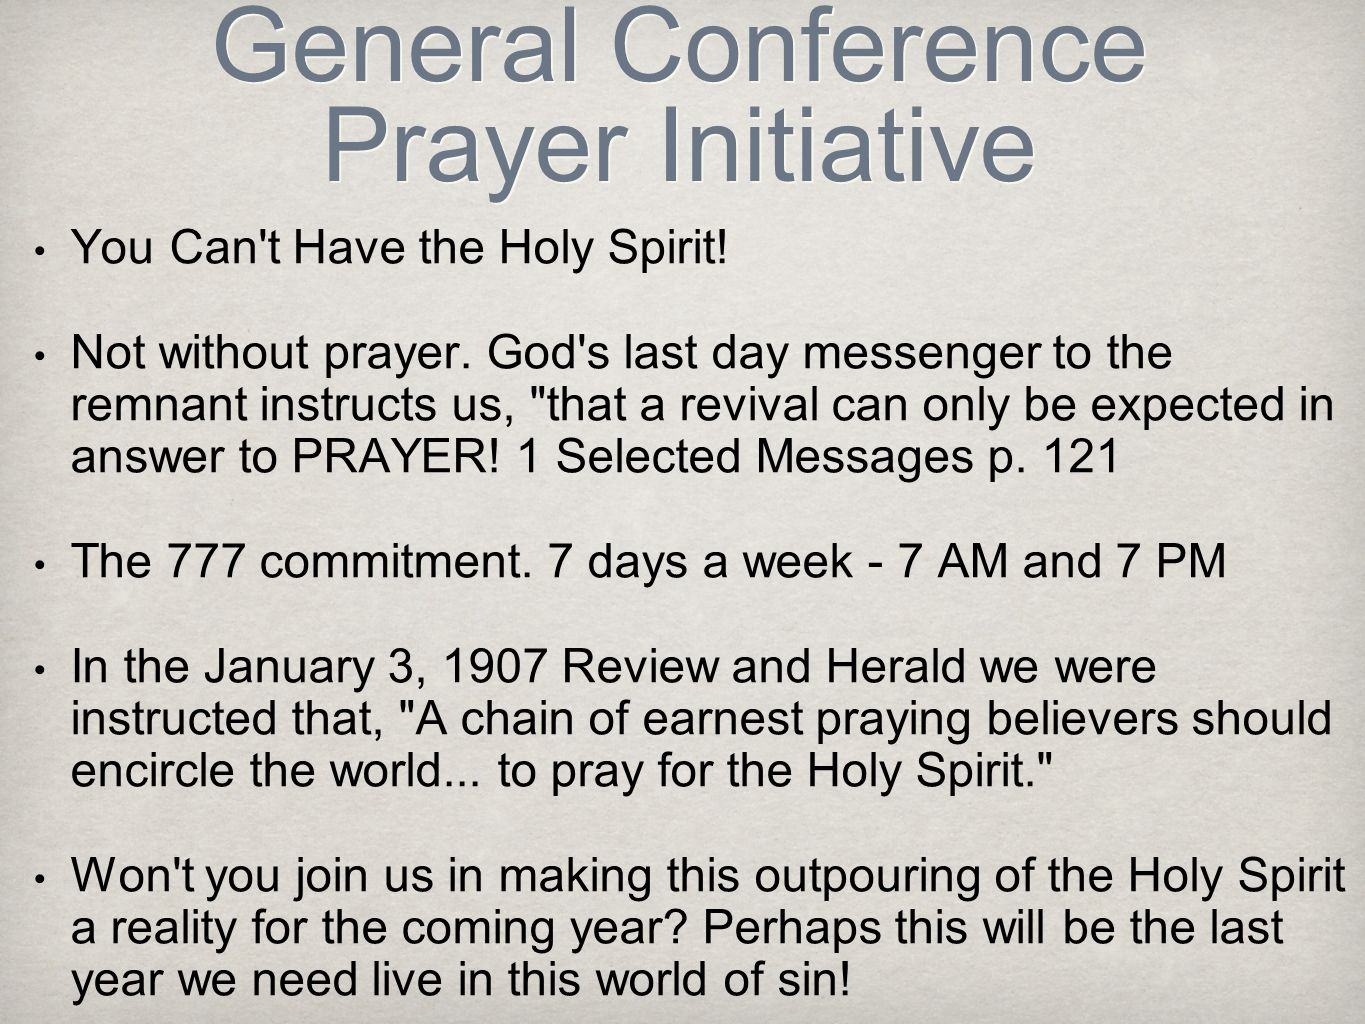 General Conference Prayer Initiative